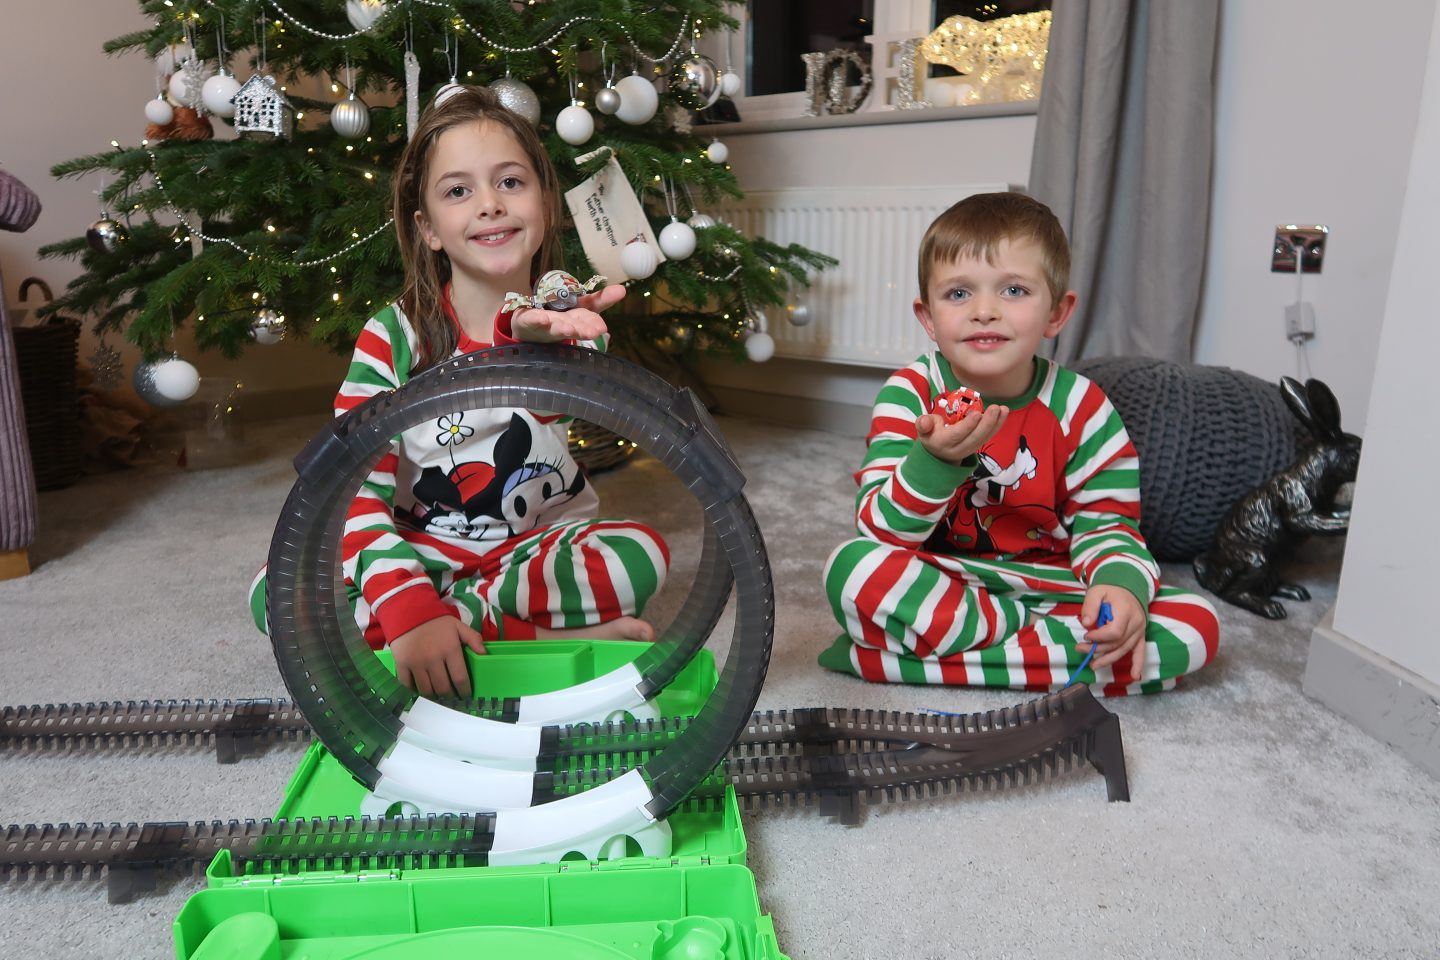 Power Rippers 2 in 1 Competition Set | REVIEW